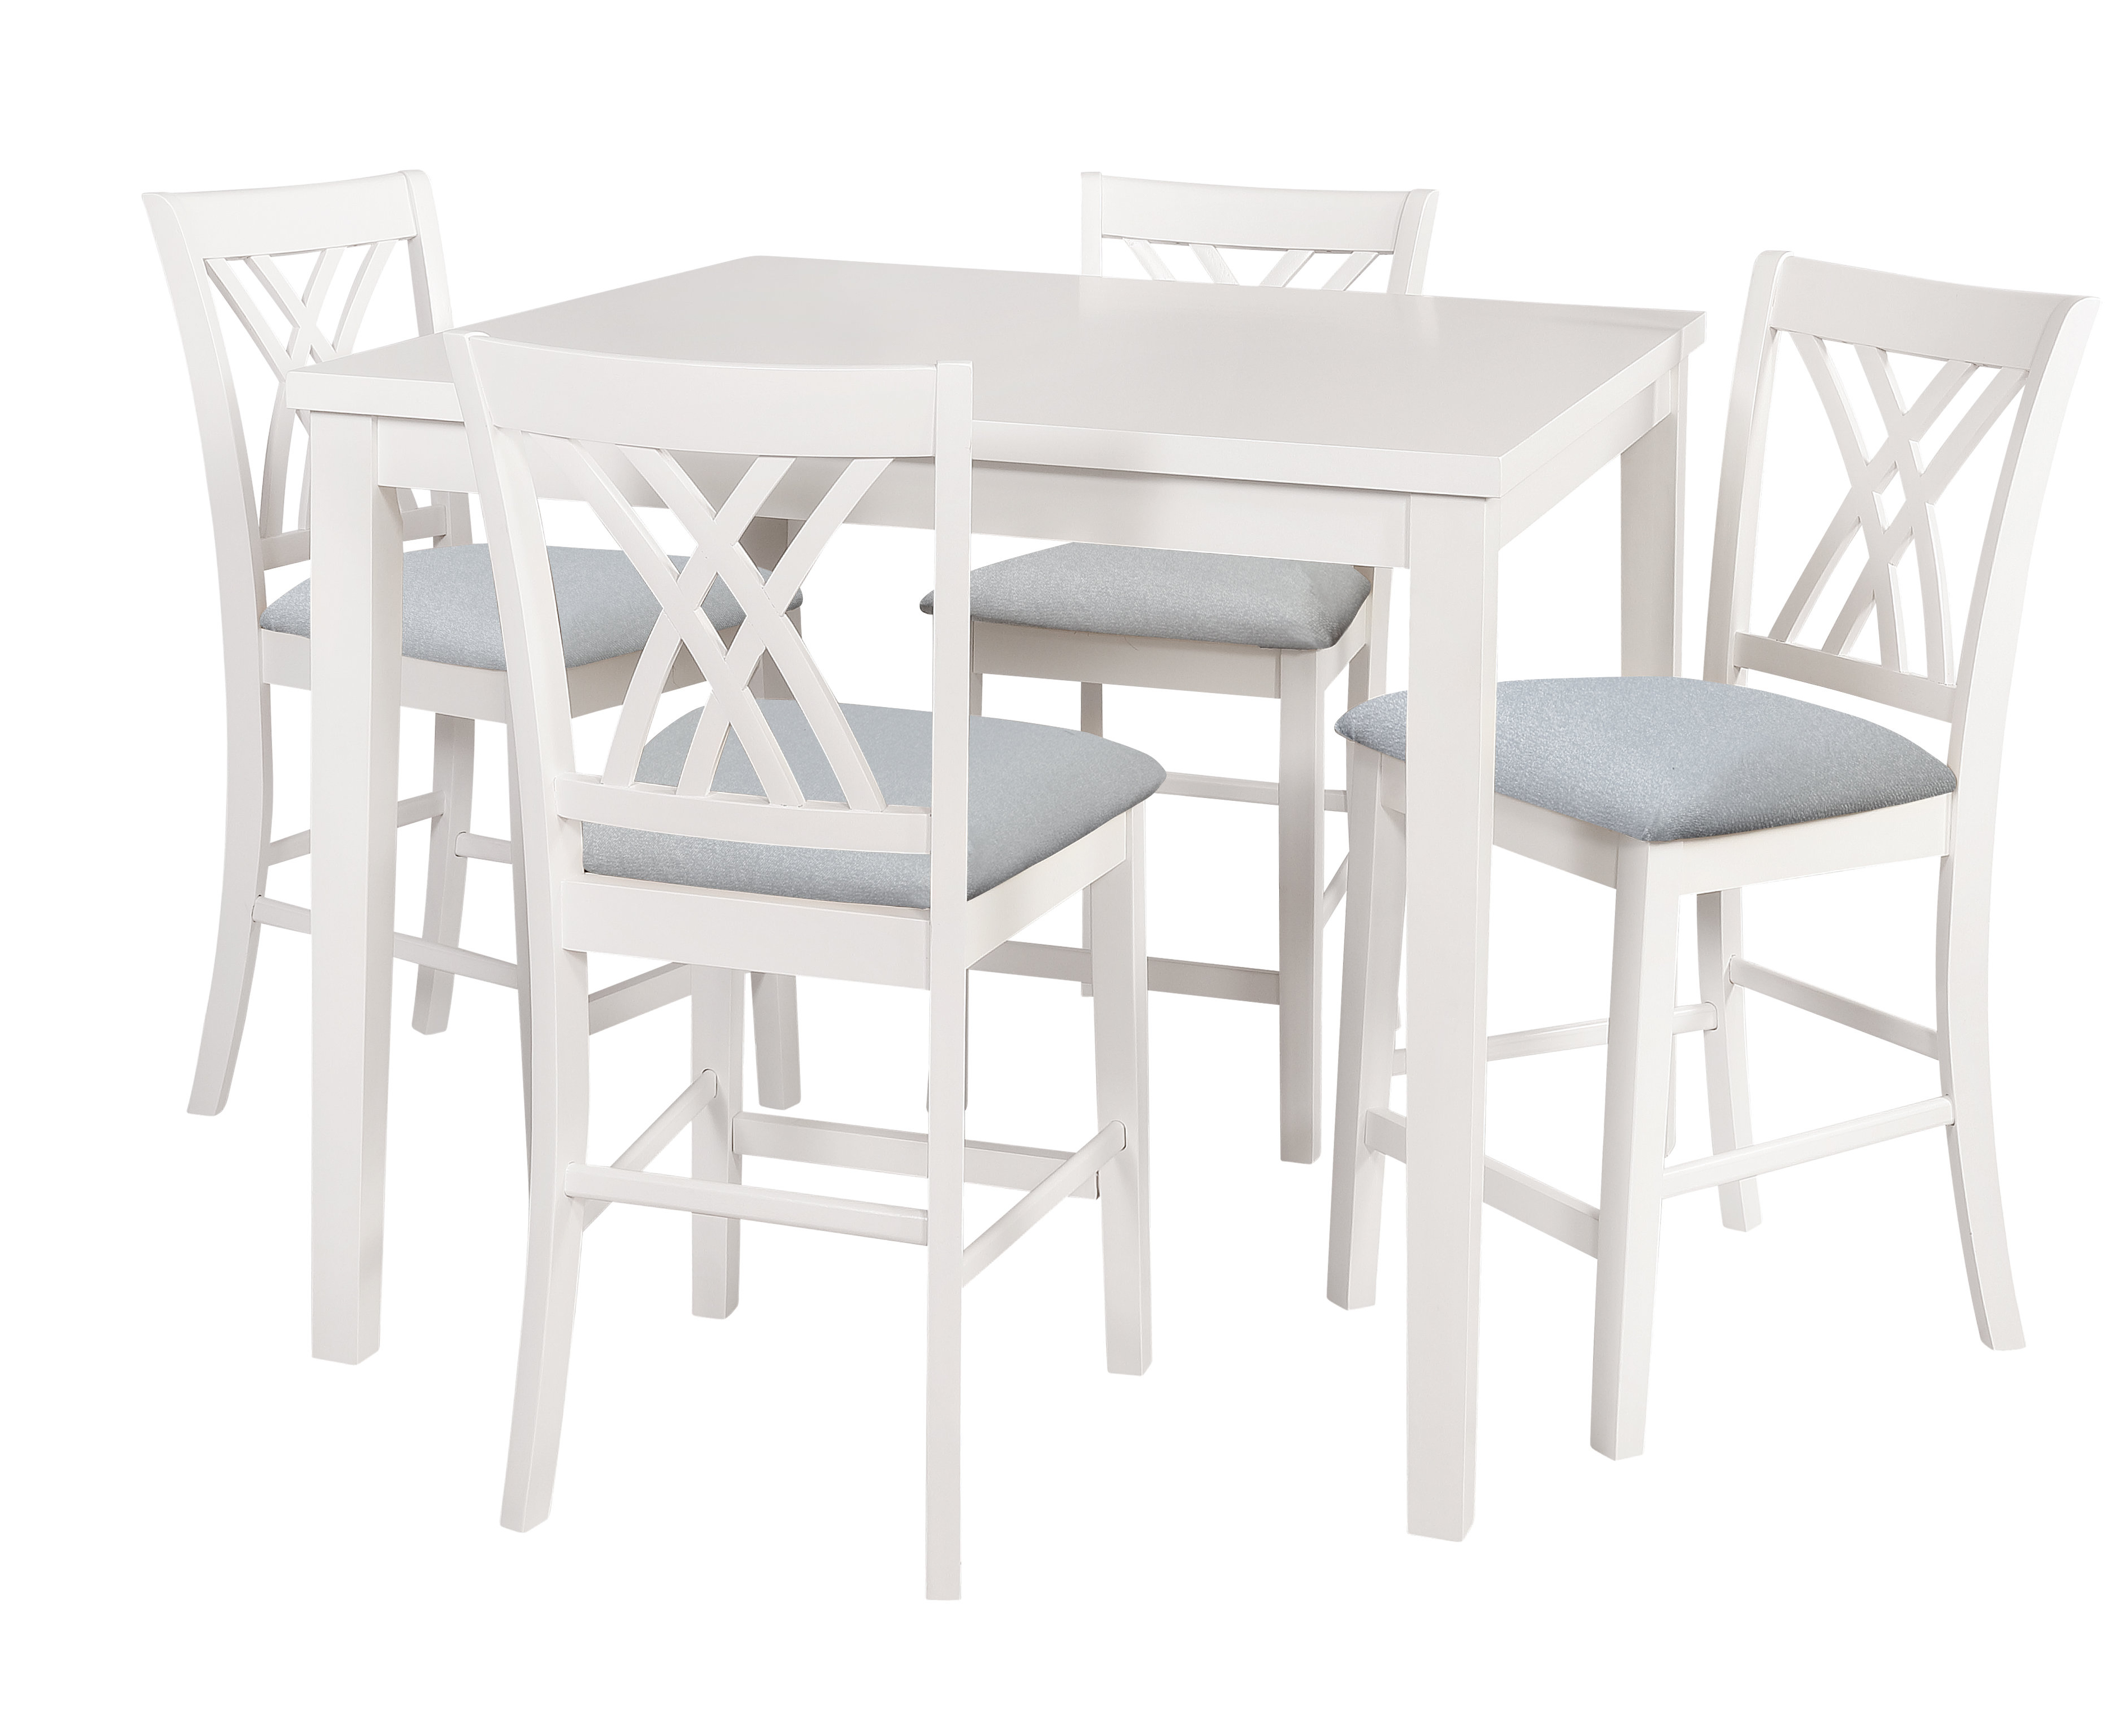 Well Liked Highland Dunes Gisella 5 Piece Breakfast Nook Dining Set & Reviews For 5 Piece Breakfast Nook Dining Sets (View 24 of 25)